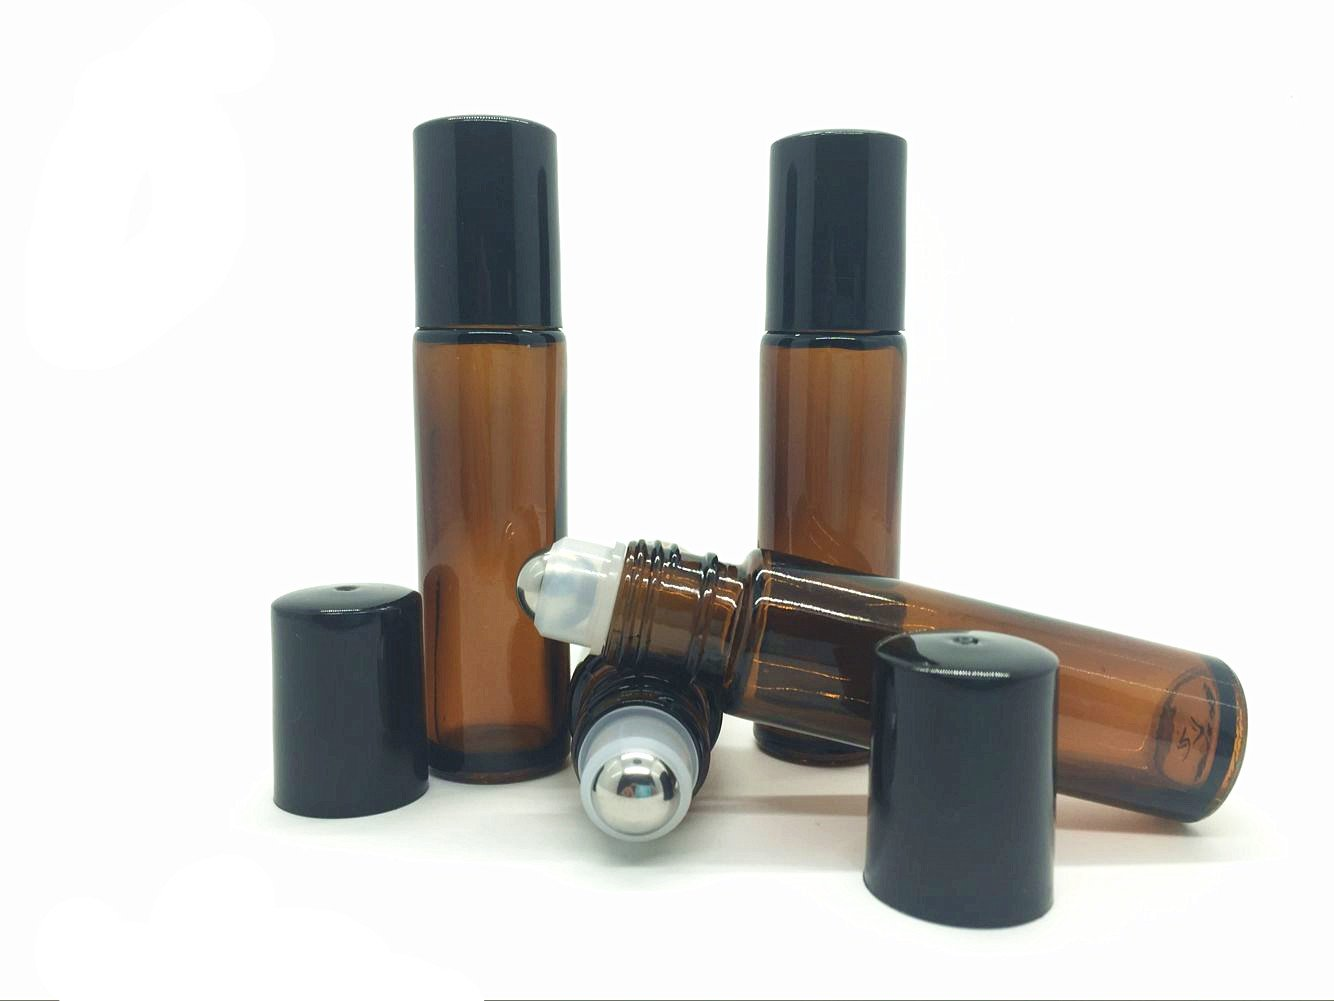 Empty Roll on Glass Bottles [STAINLESS STEEL ROLLER] 10ml Refillable Color Roll On for Fragrance Essential Oil - Metal Chrome Roller Ball (3 Pack -)